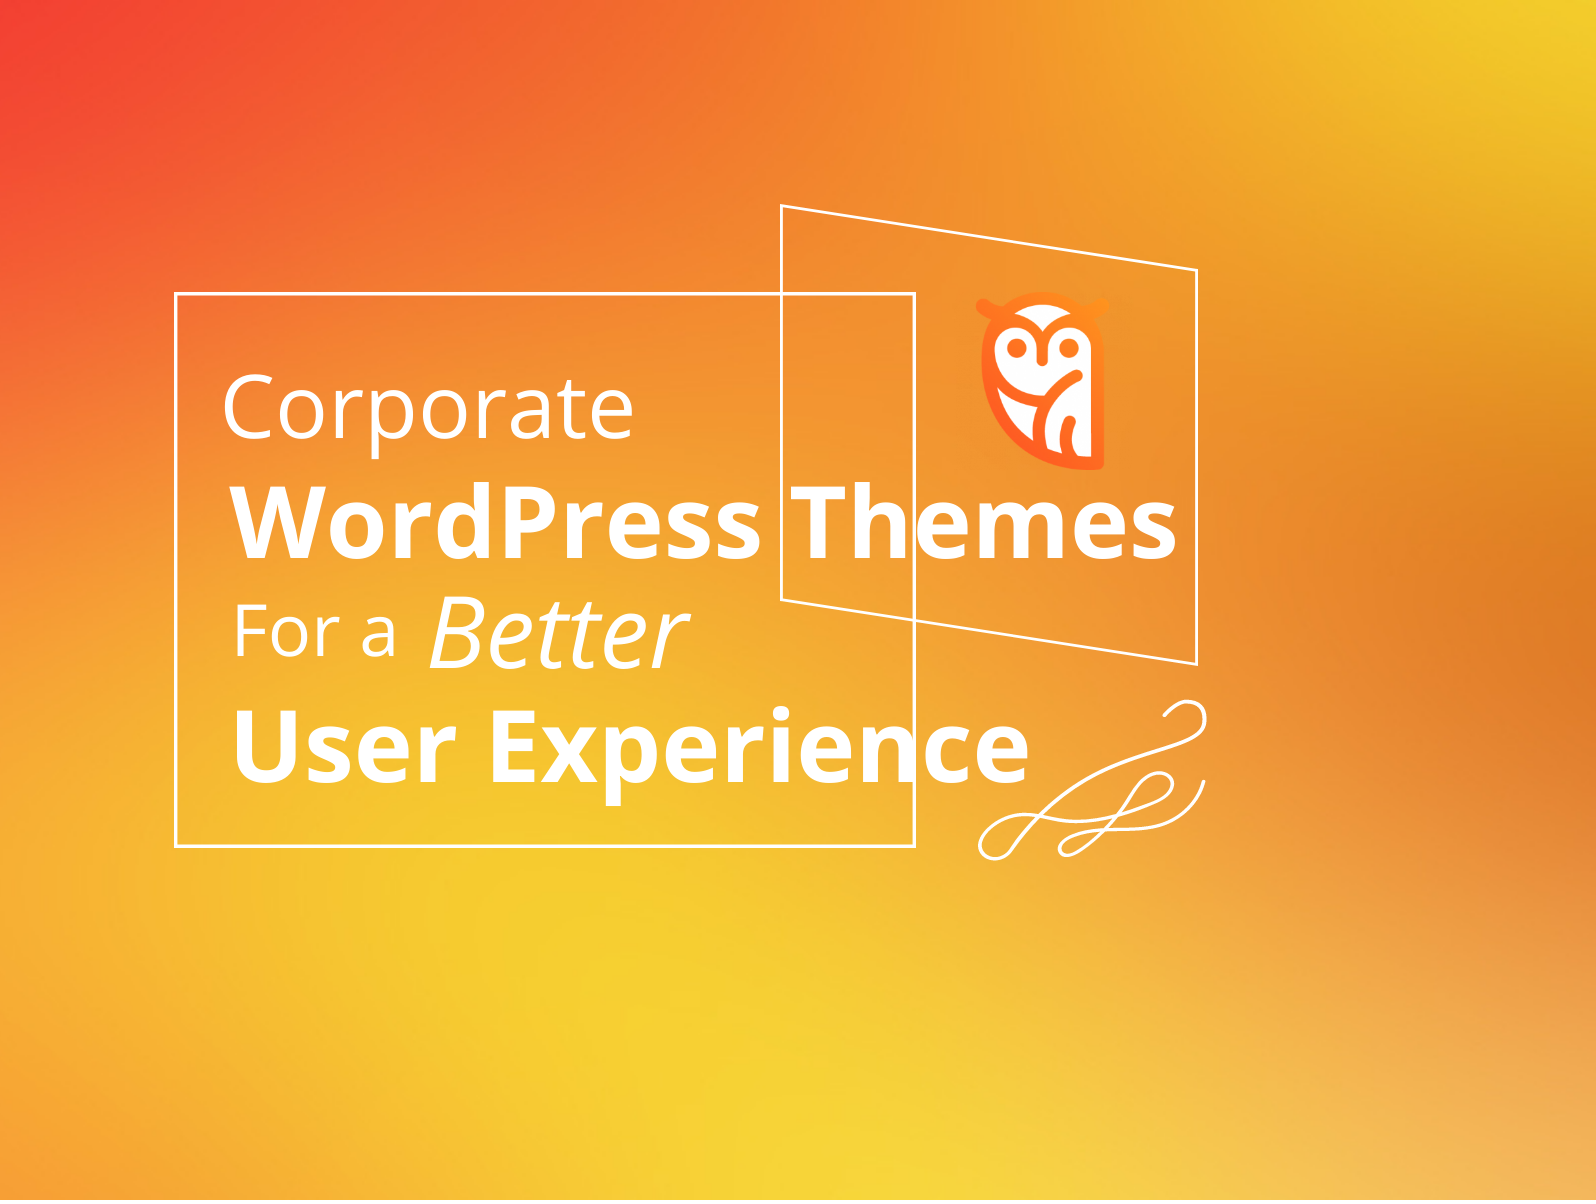 wordpress themes for better user experience